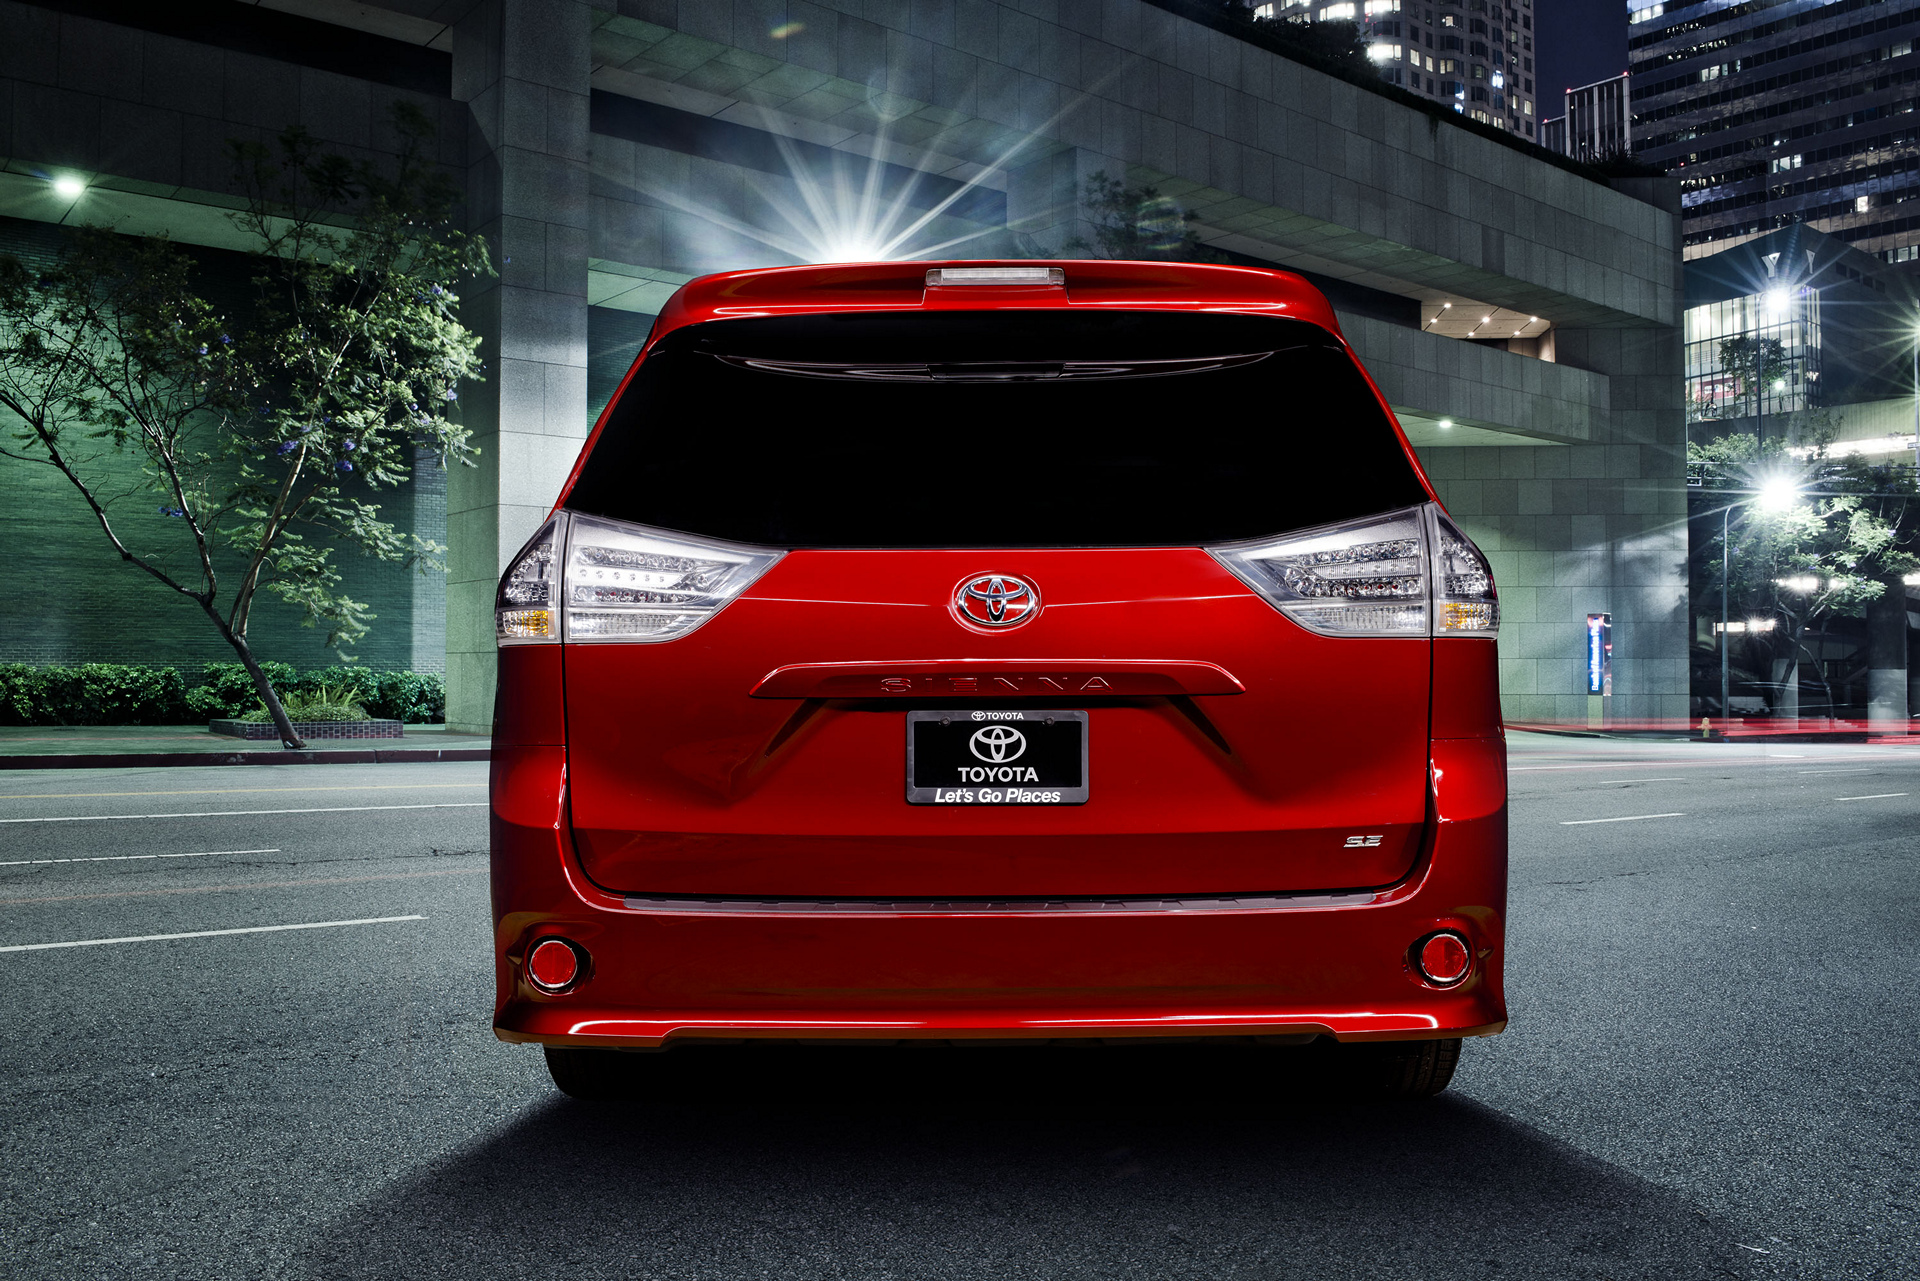 2017 toyota sienna review carrrs auto portal. Black Bedroom Furniture Sets. Home Design Ideas